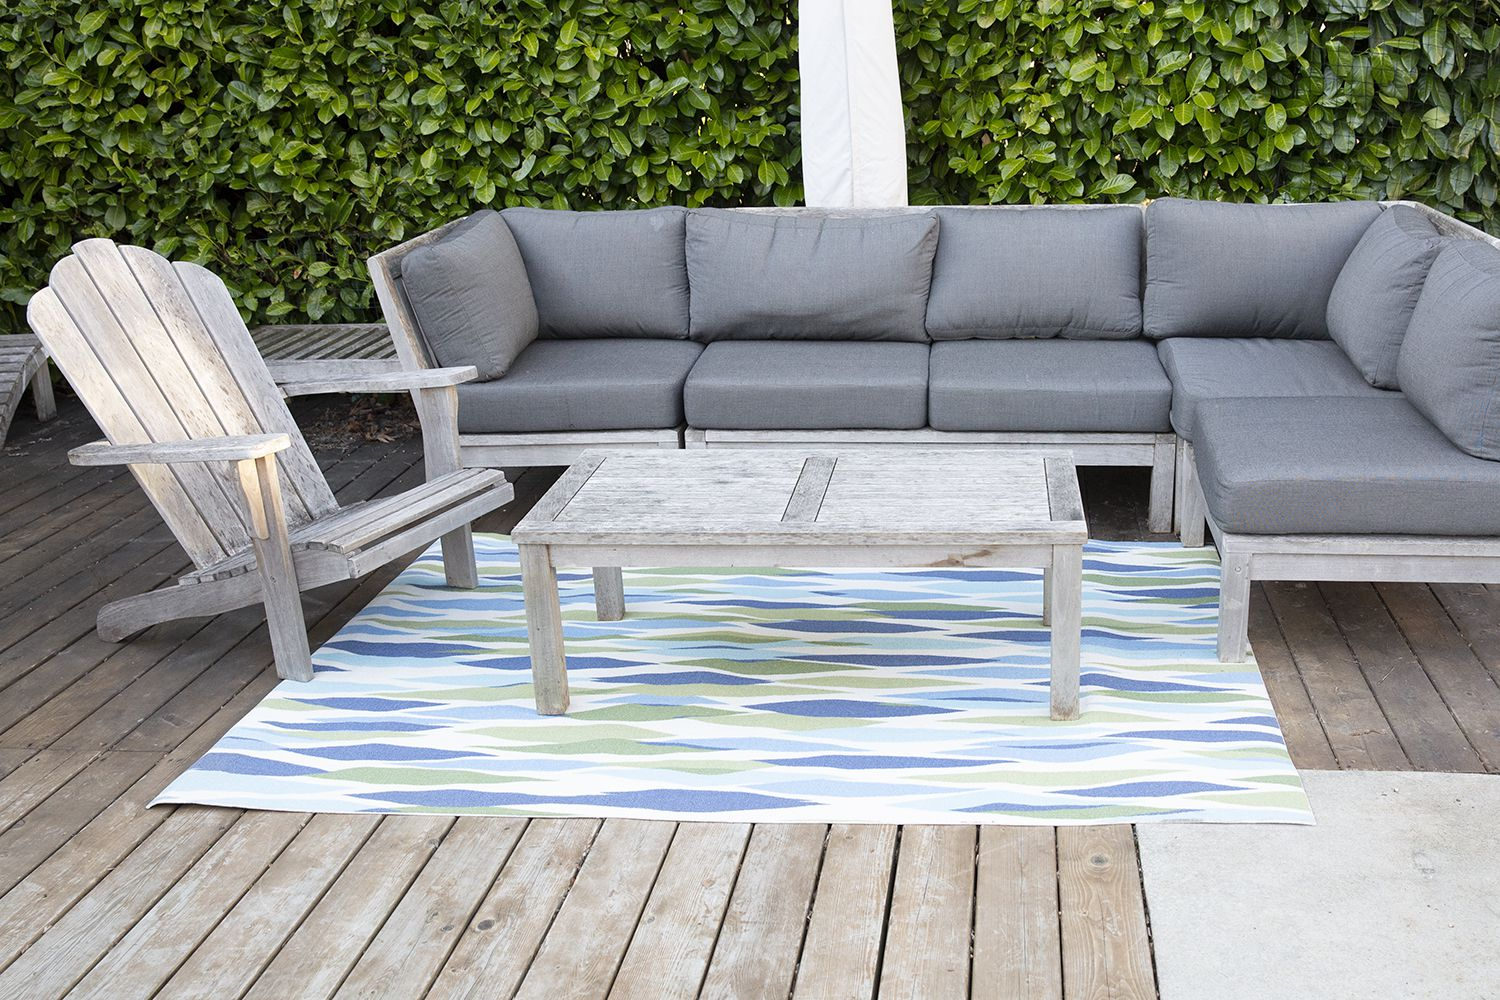 Picture of: 15 Cheap Outdoor Rugs That Will Make Your Backyard Feel Chic